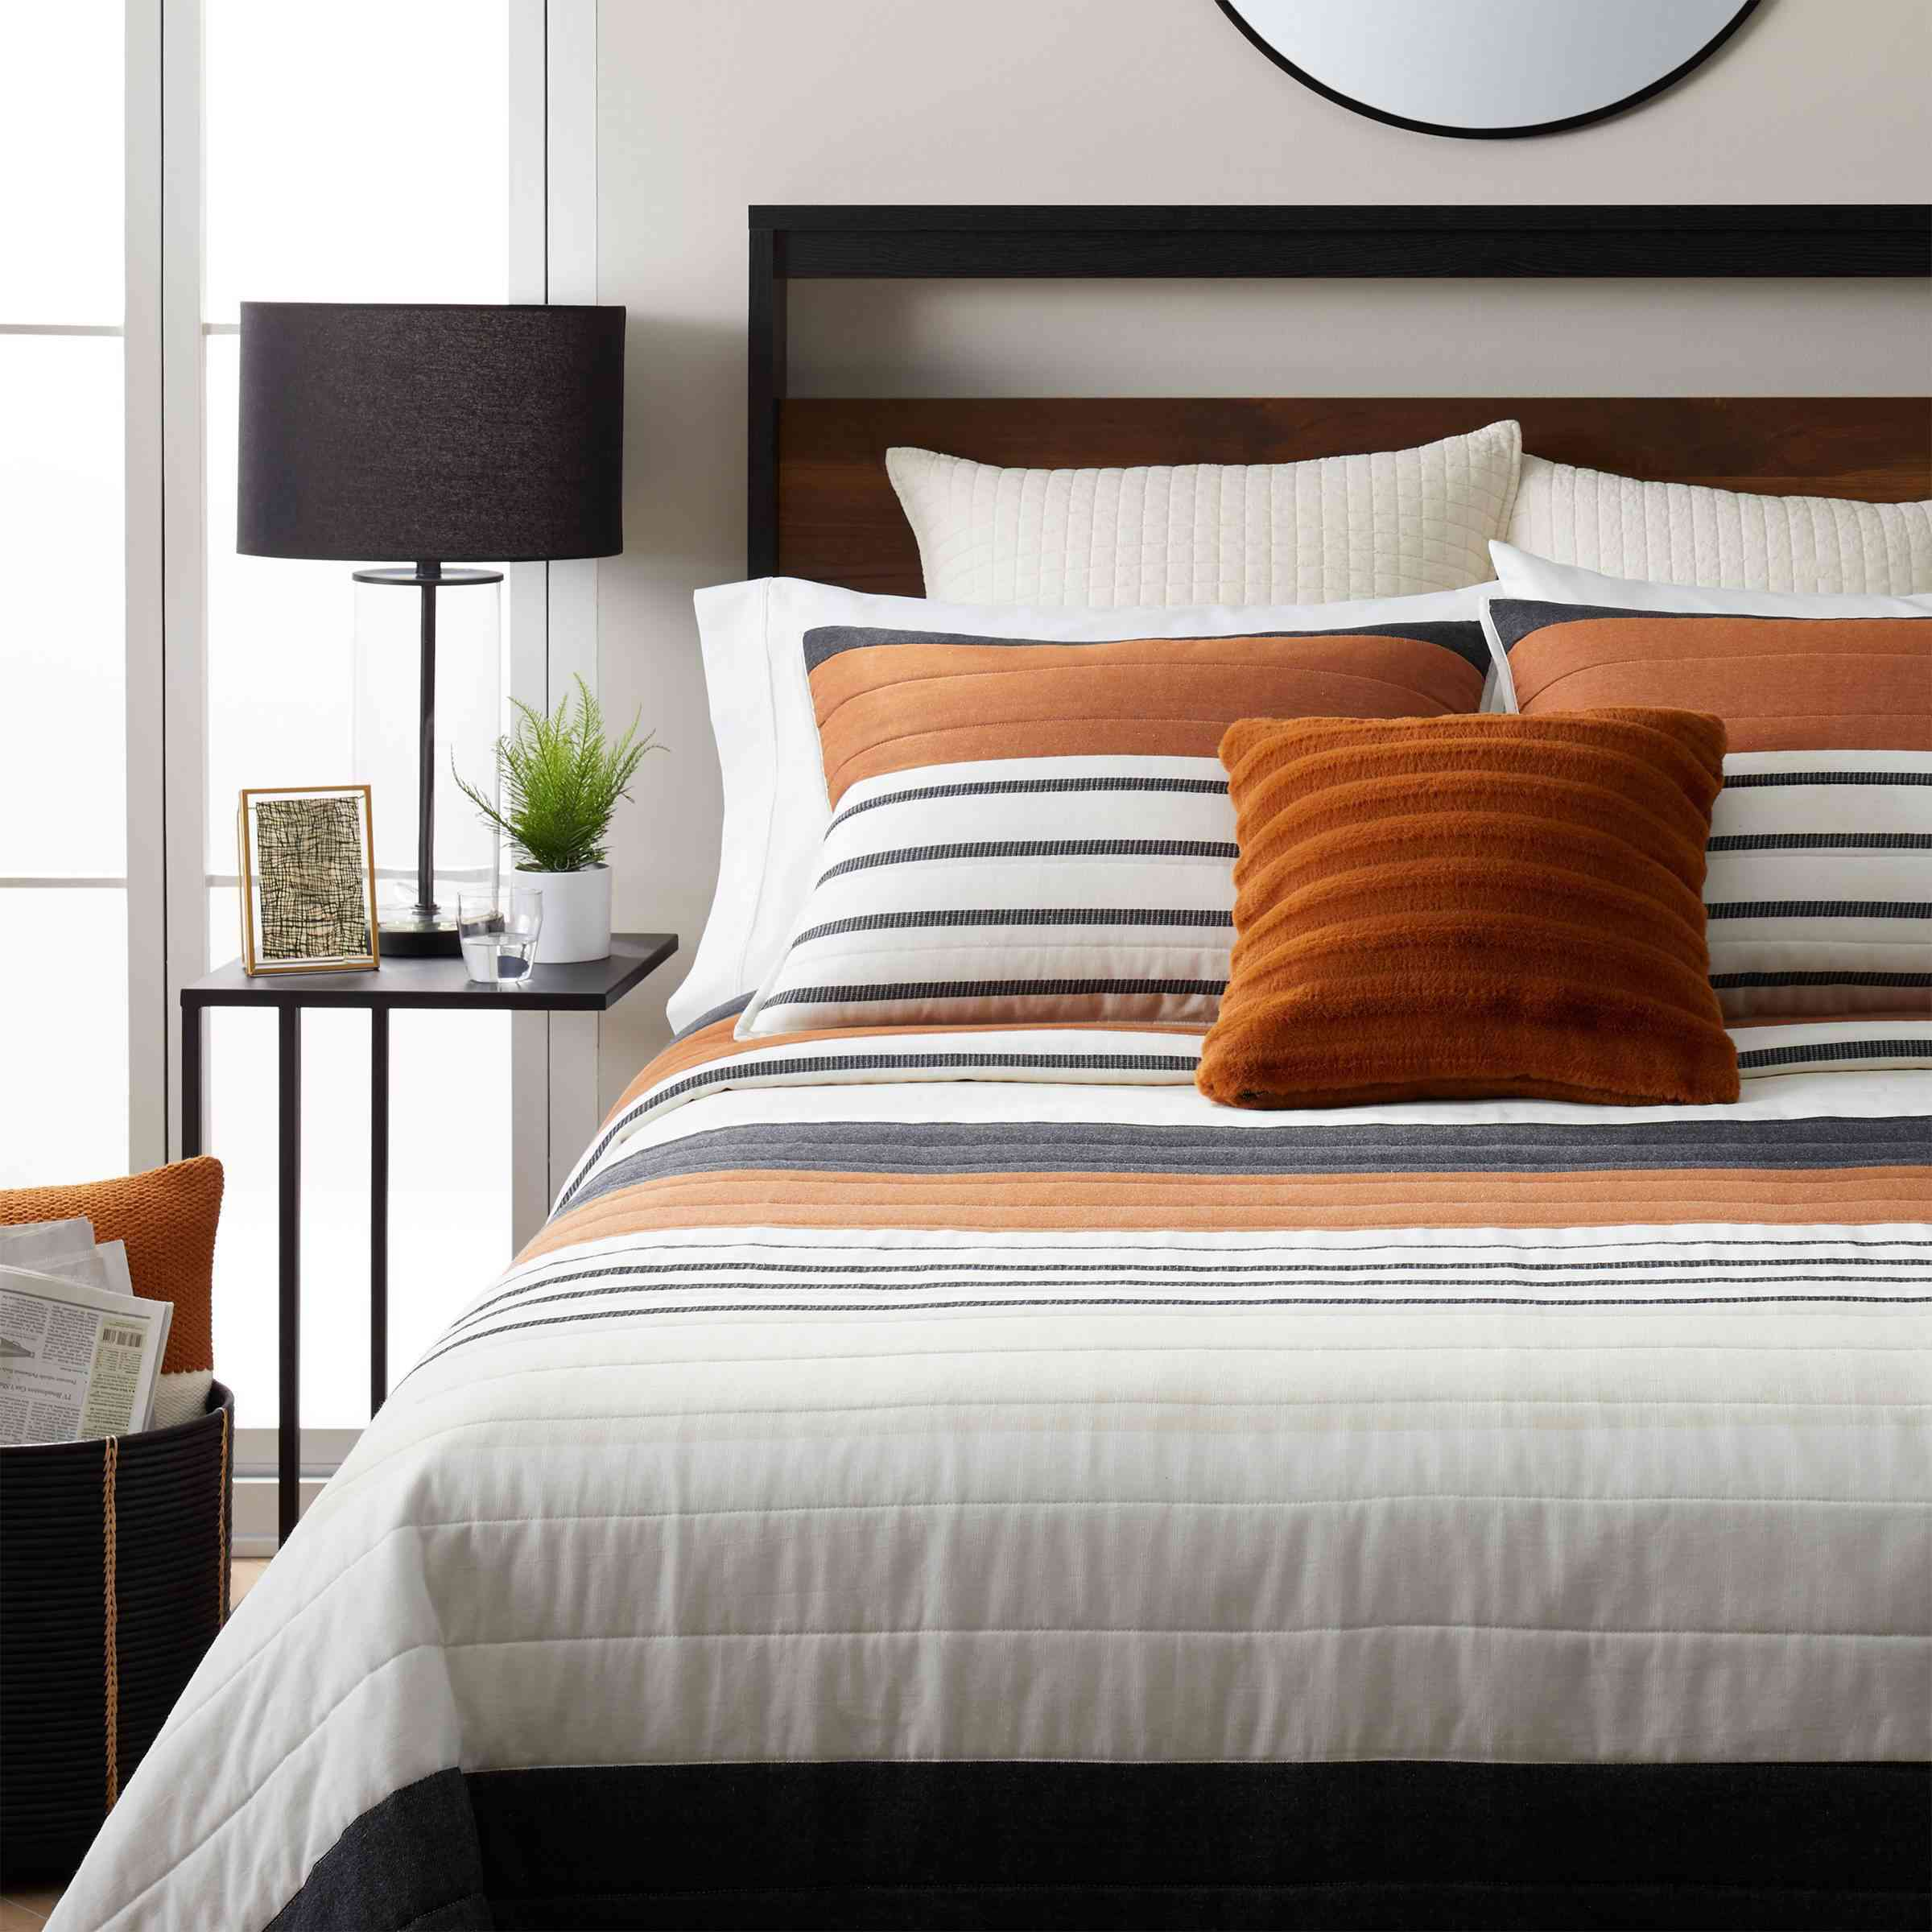 Exclusive: Nate Berkus's New Project 62 Bedding Landed at Target Just In Time for Fall